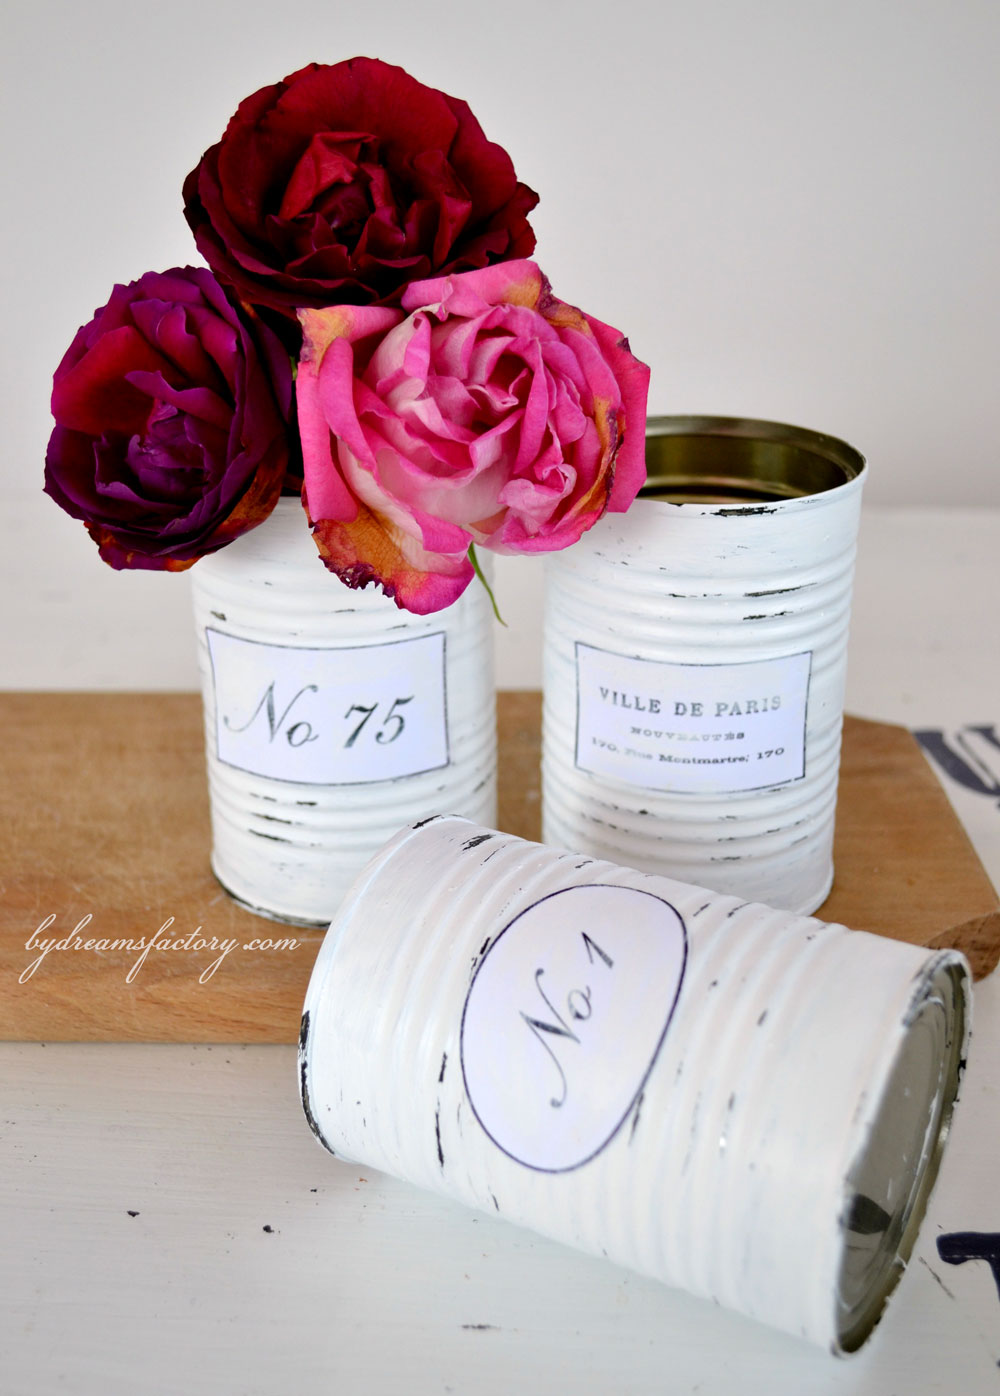 Learn how to make some amazing Shabby French recycled tin cans that you use all around your home. Get organized in a classy way! - Dreams Factory